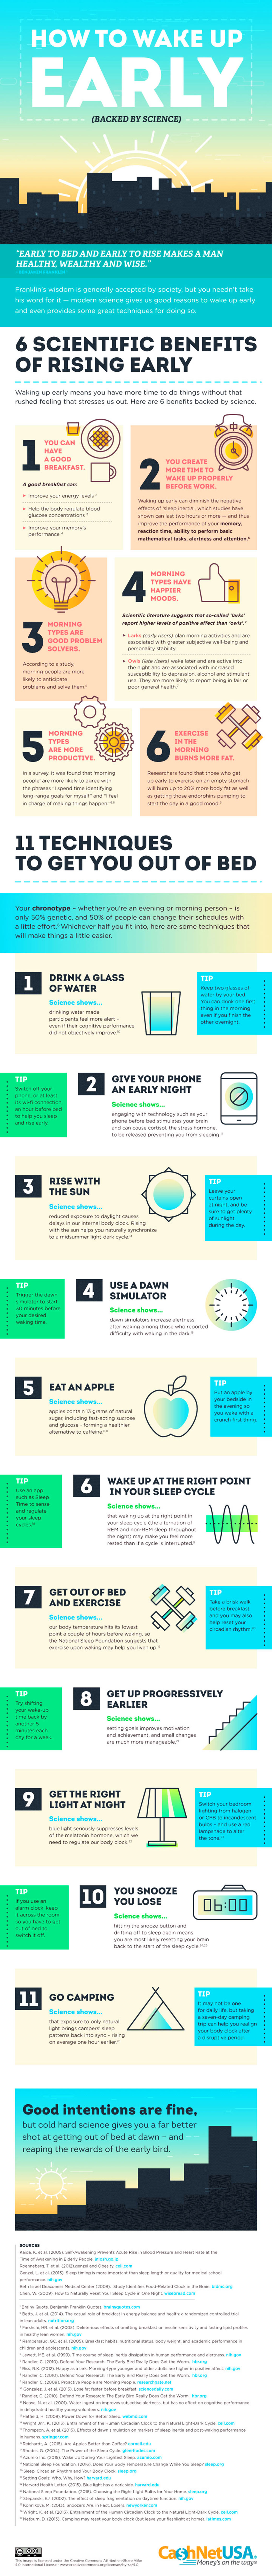 How to Get Used to Waking Up Early Infographic